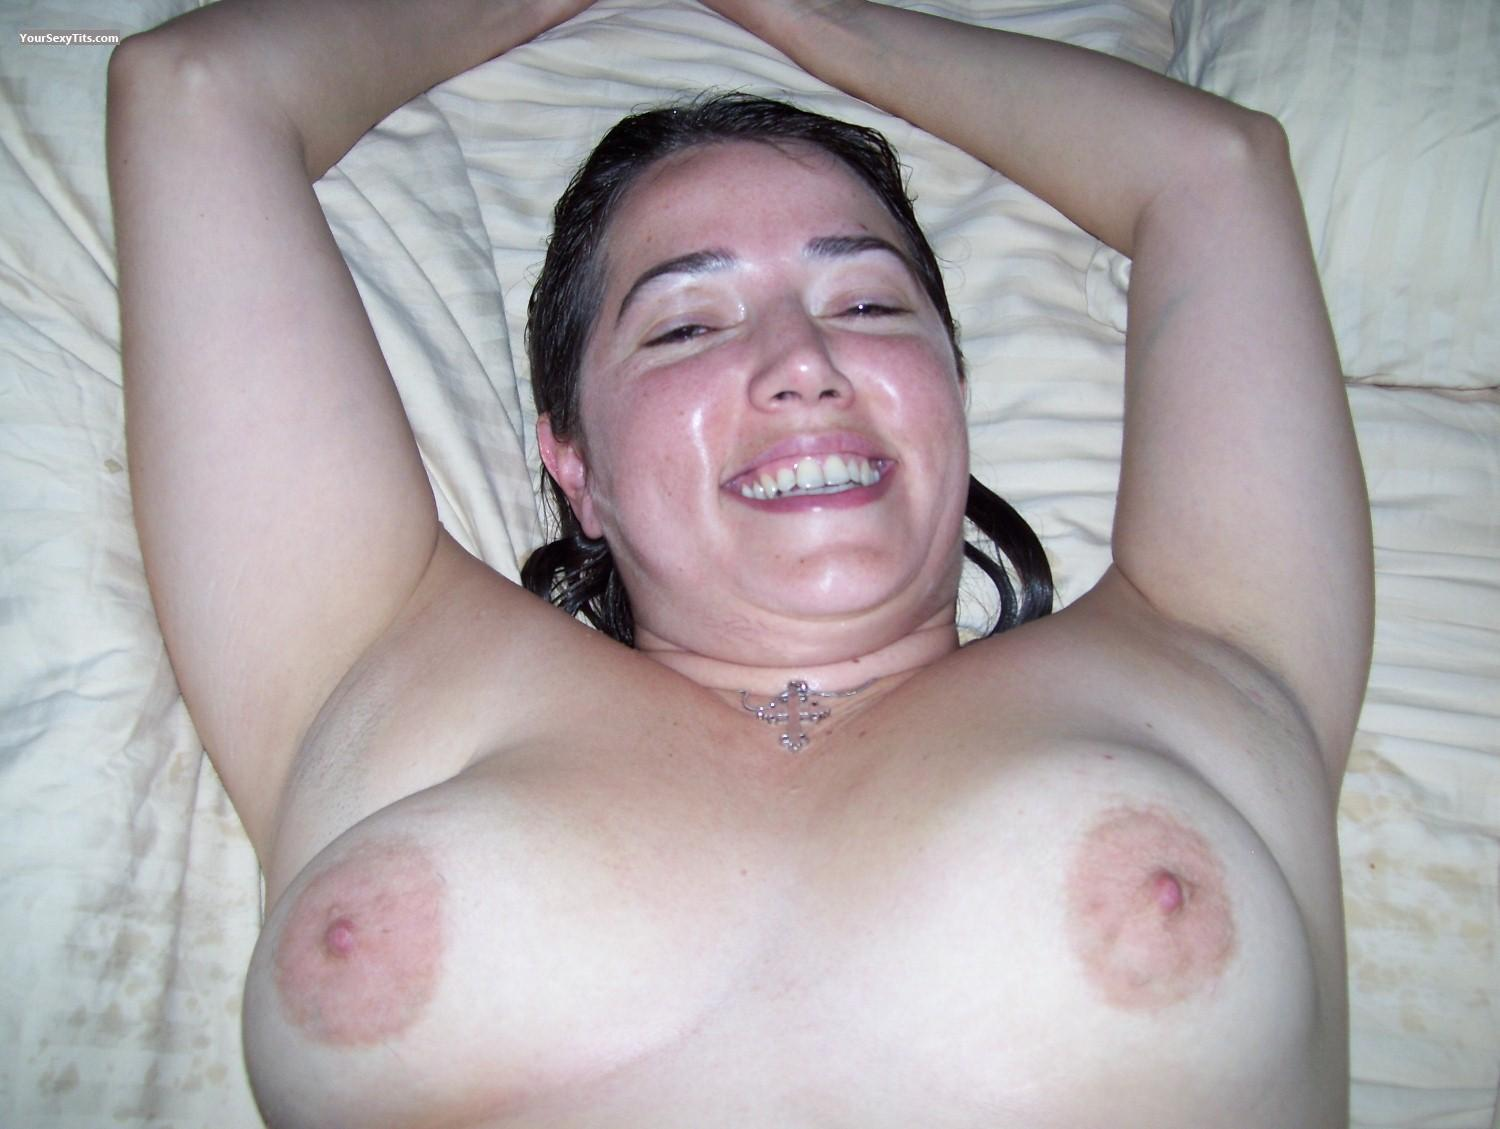 Tit Flash: Big Tits - Topless Stevey from United States